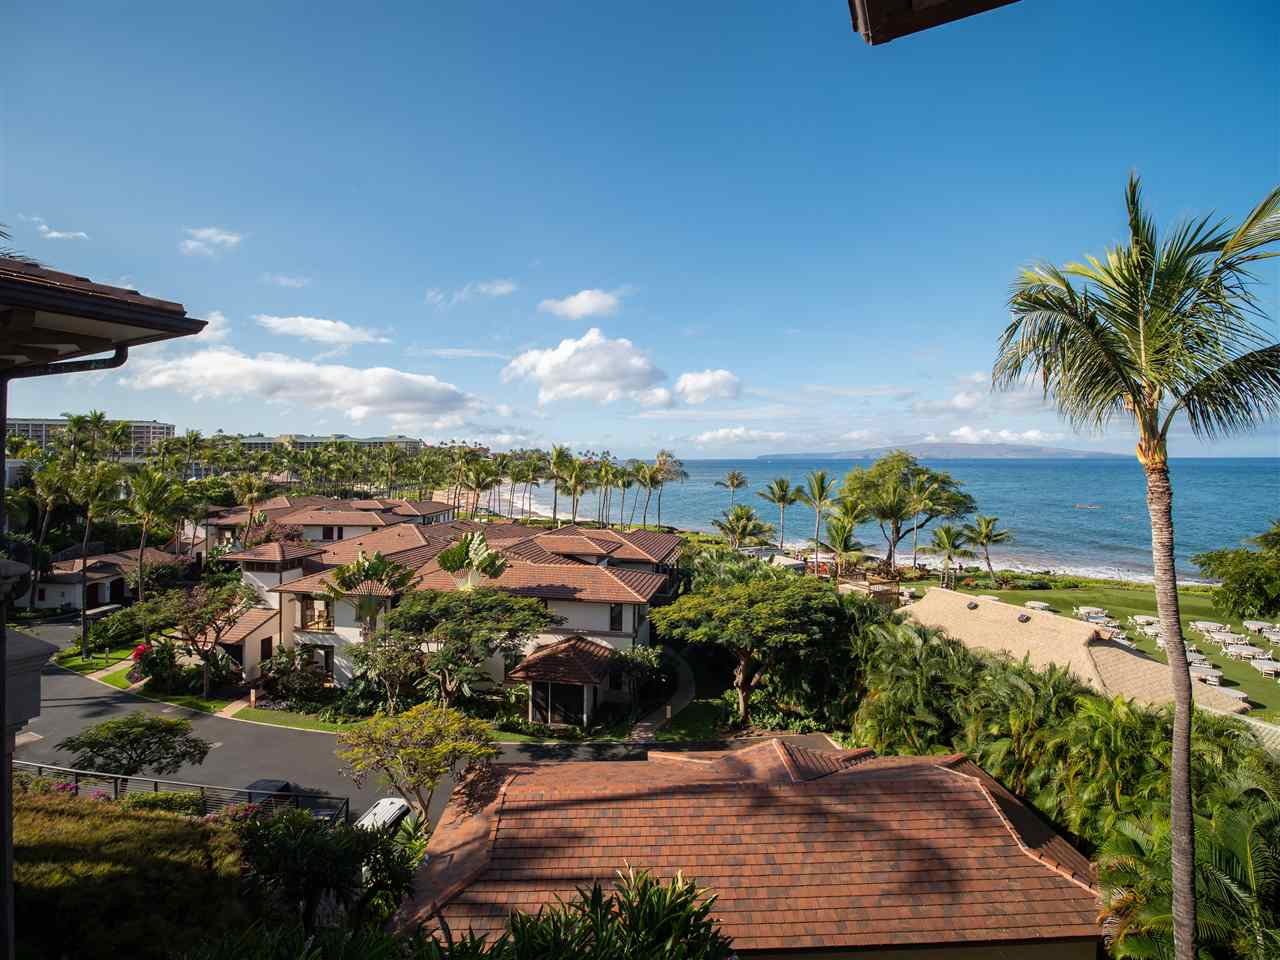 3800 Wailea Alanui Dr Property Photo